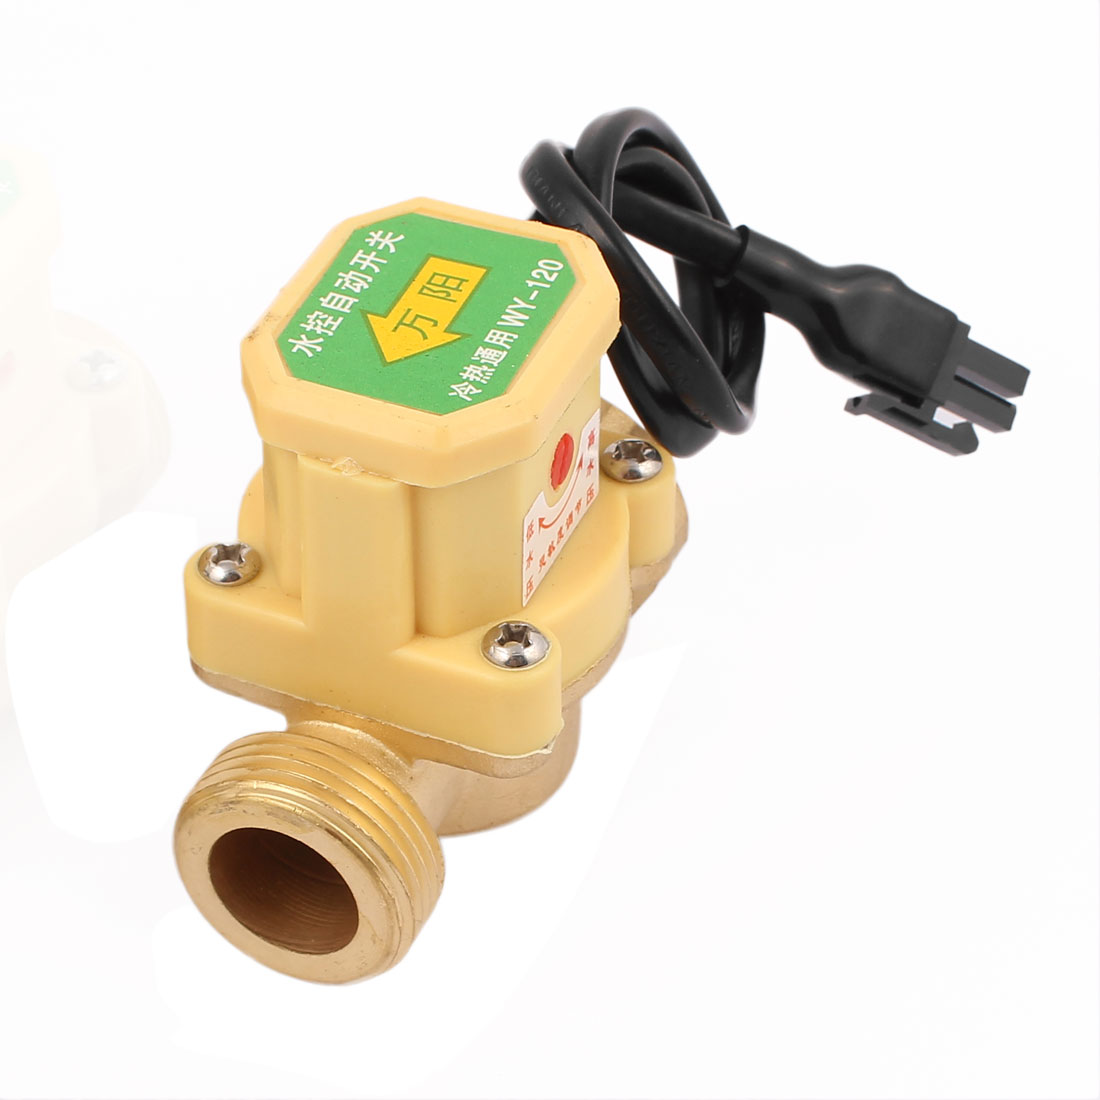 120W Power 30.5mm Female to 26mm Male Thread Circulation NO Pump Water Heater Flow Sensor Switch